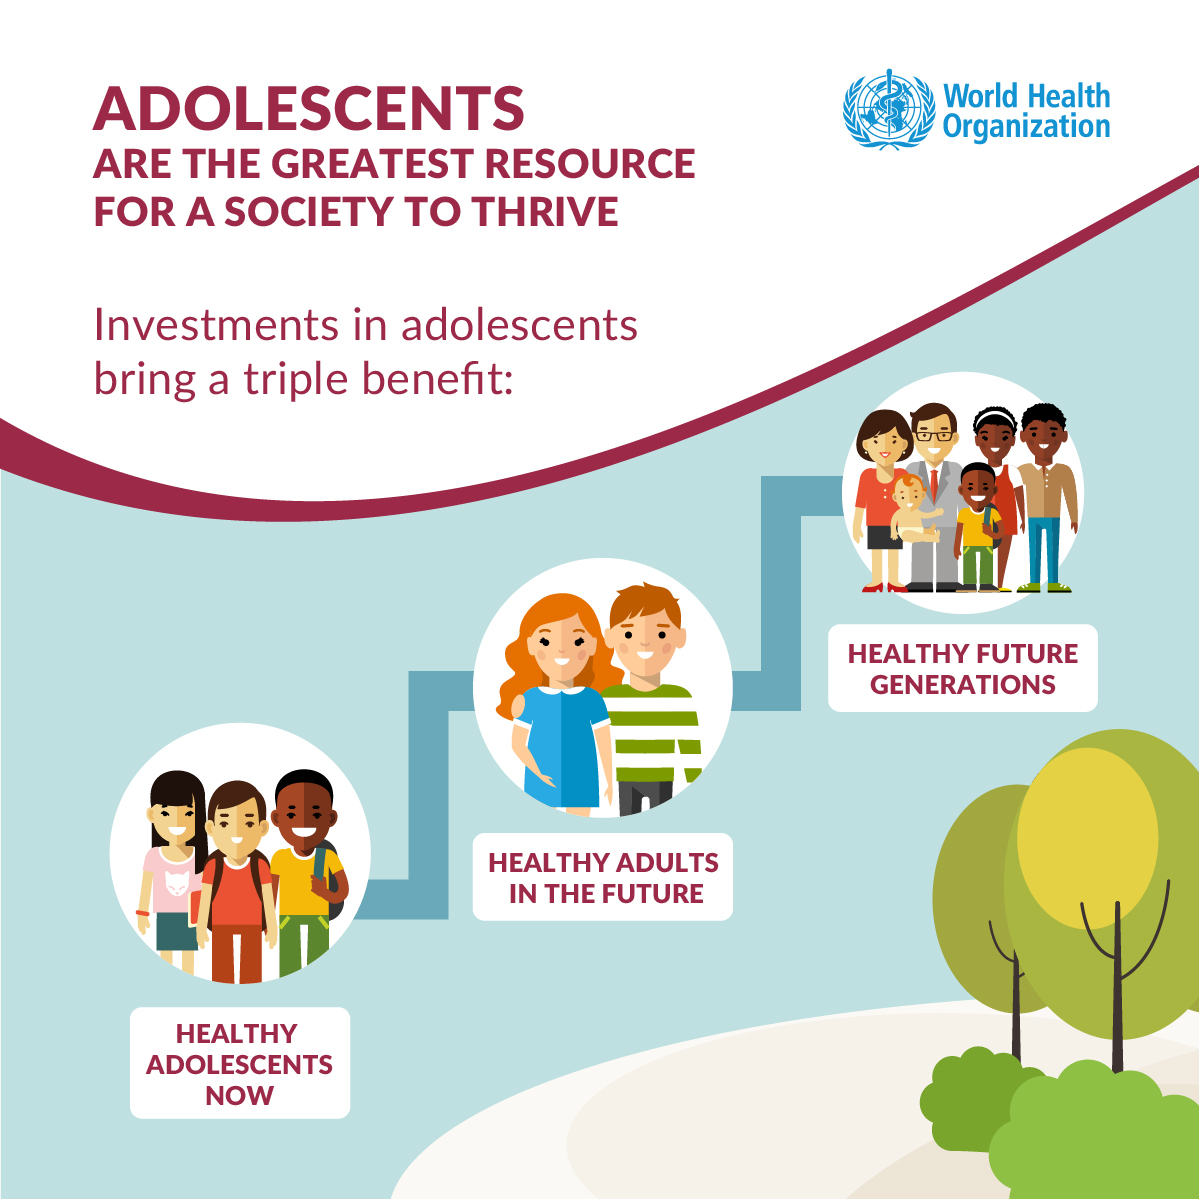 Adolescents are the greates resource for a society to thrive (Source: WHO)